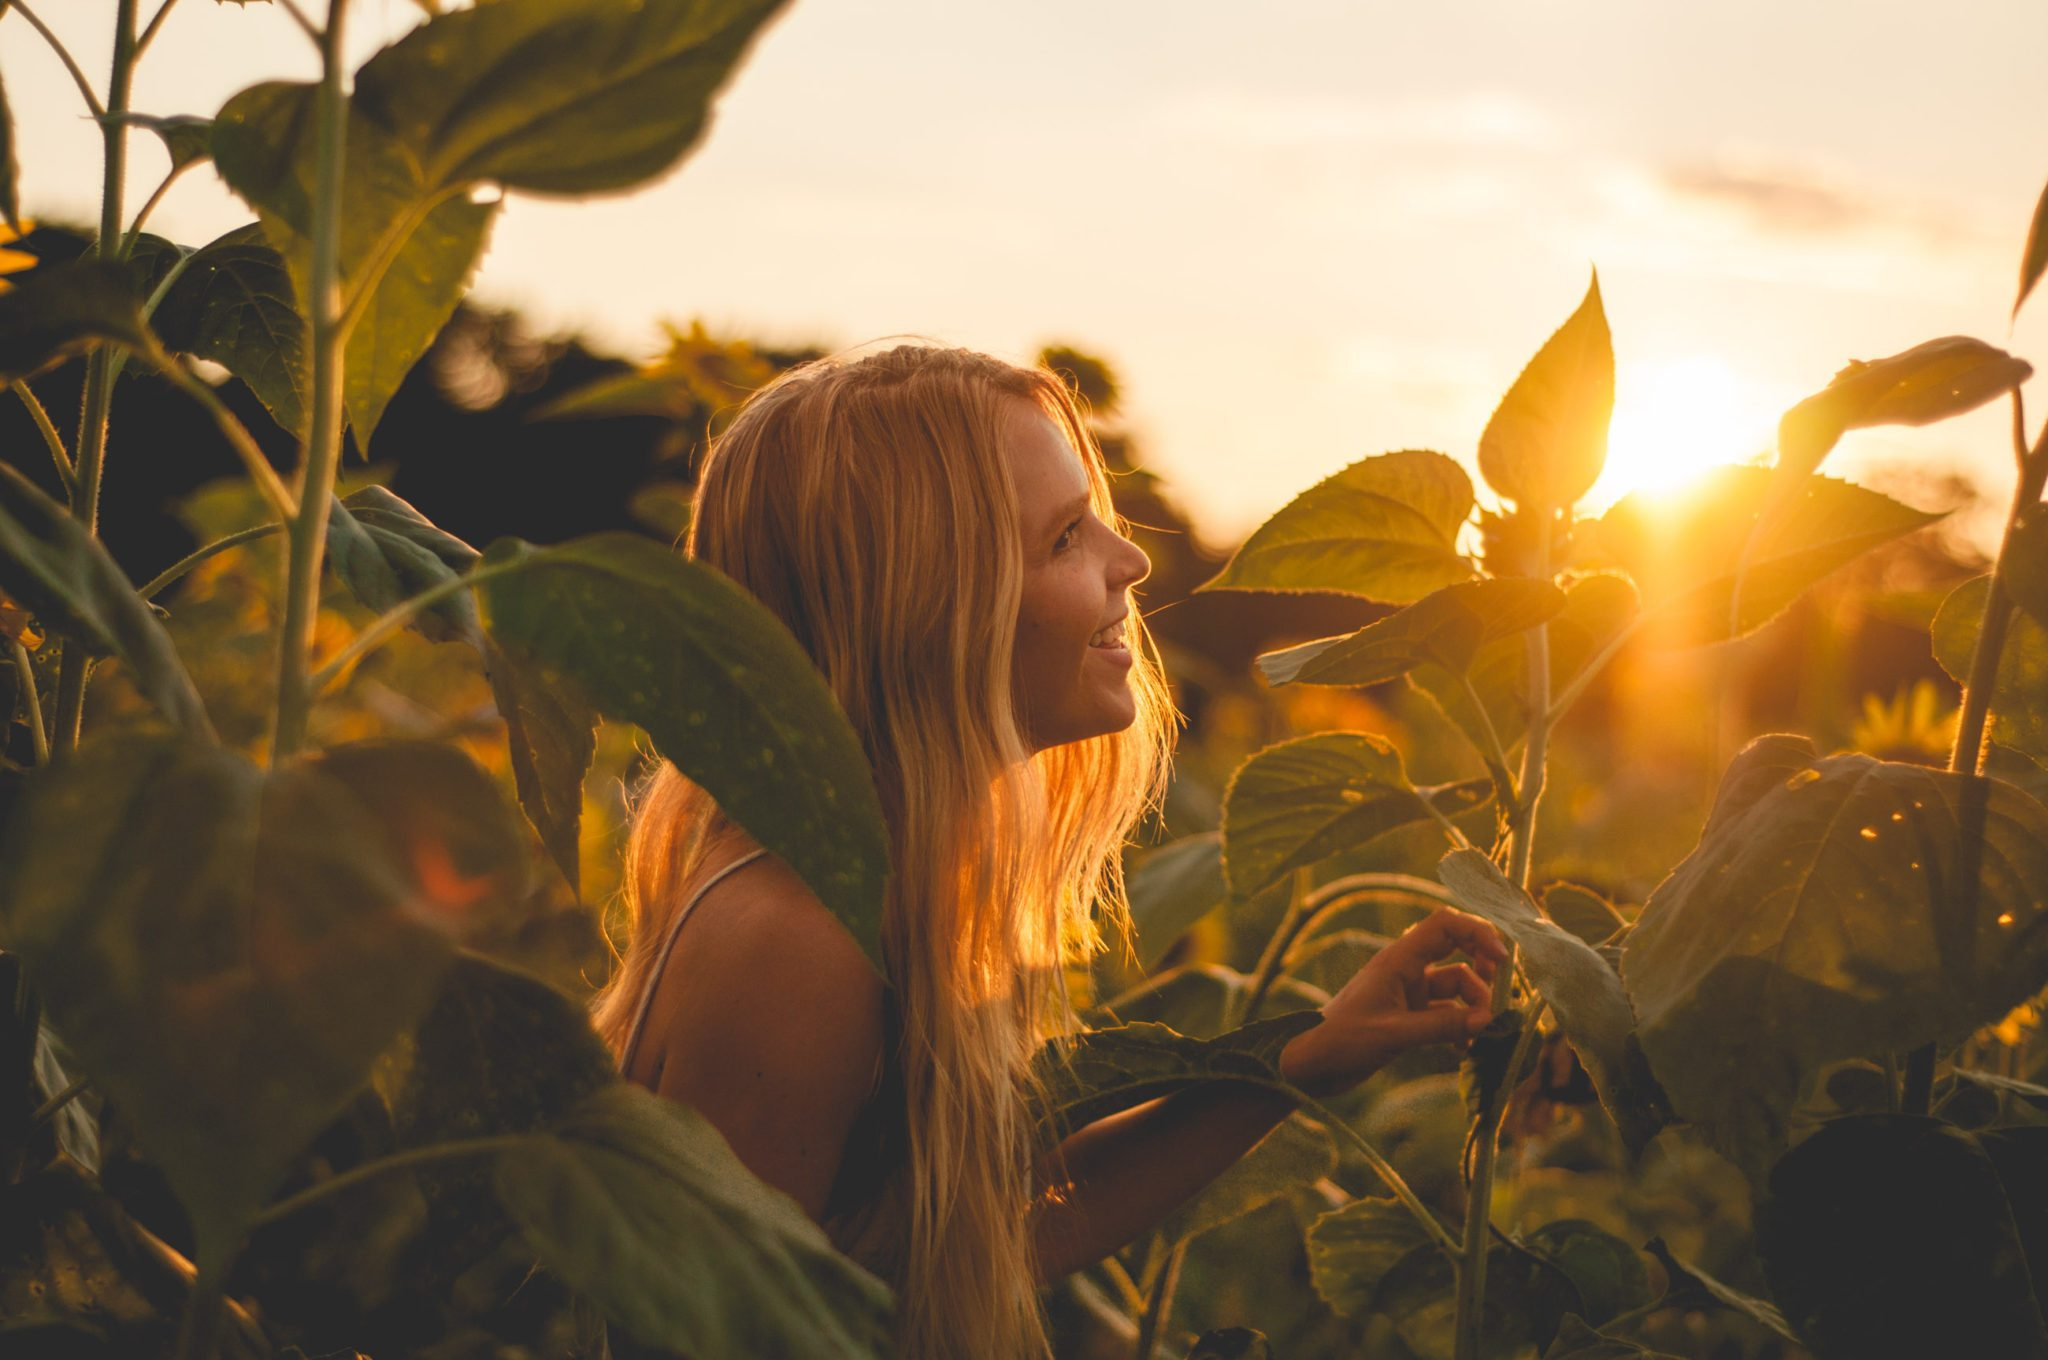 Megan Rae gazing and smiling at a sunflower in the golden light